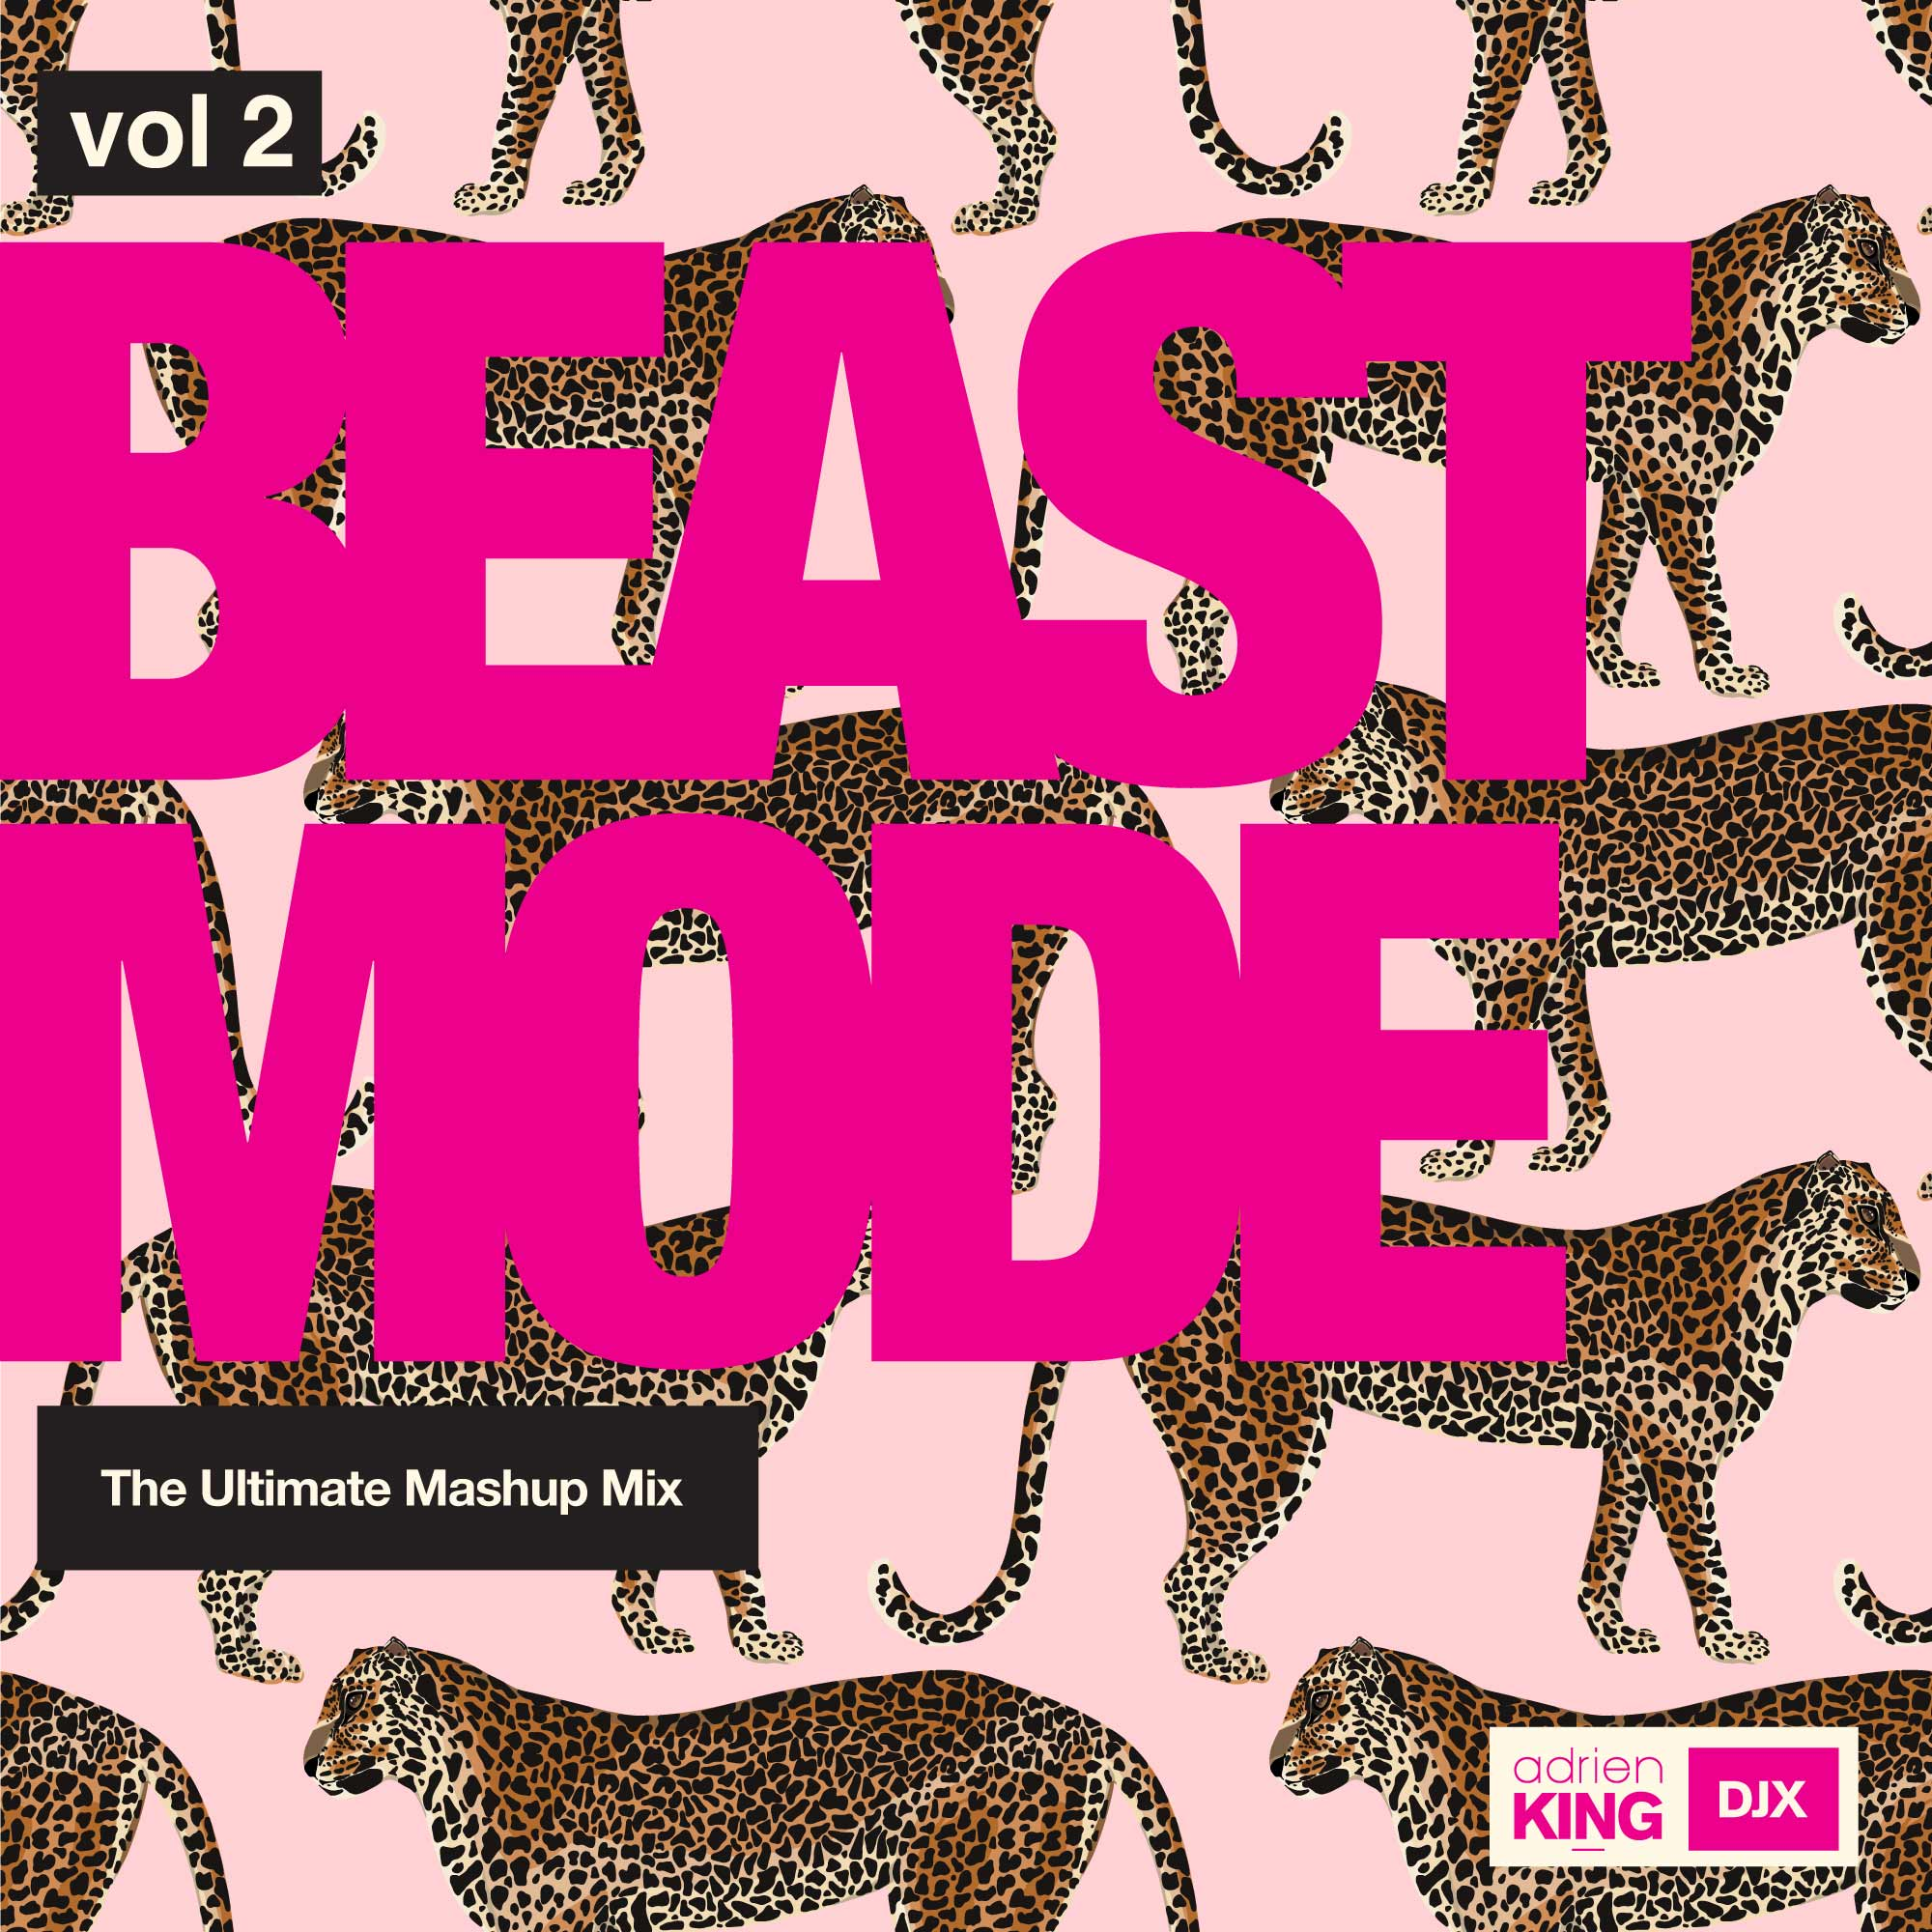 Beast Mode – The Ultimate Mashup Mix Vol 2